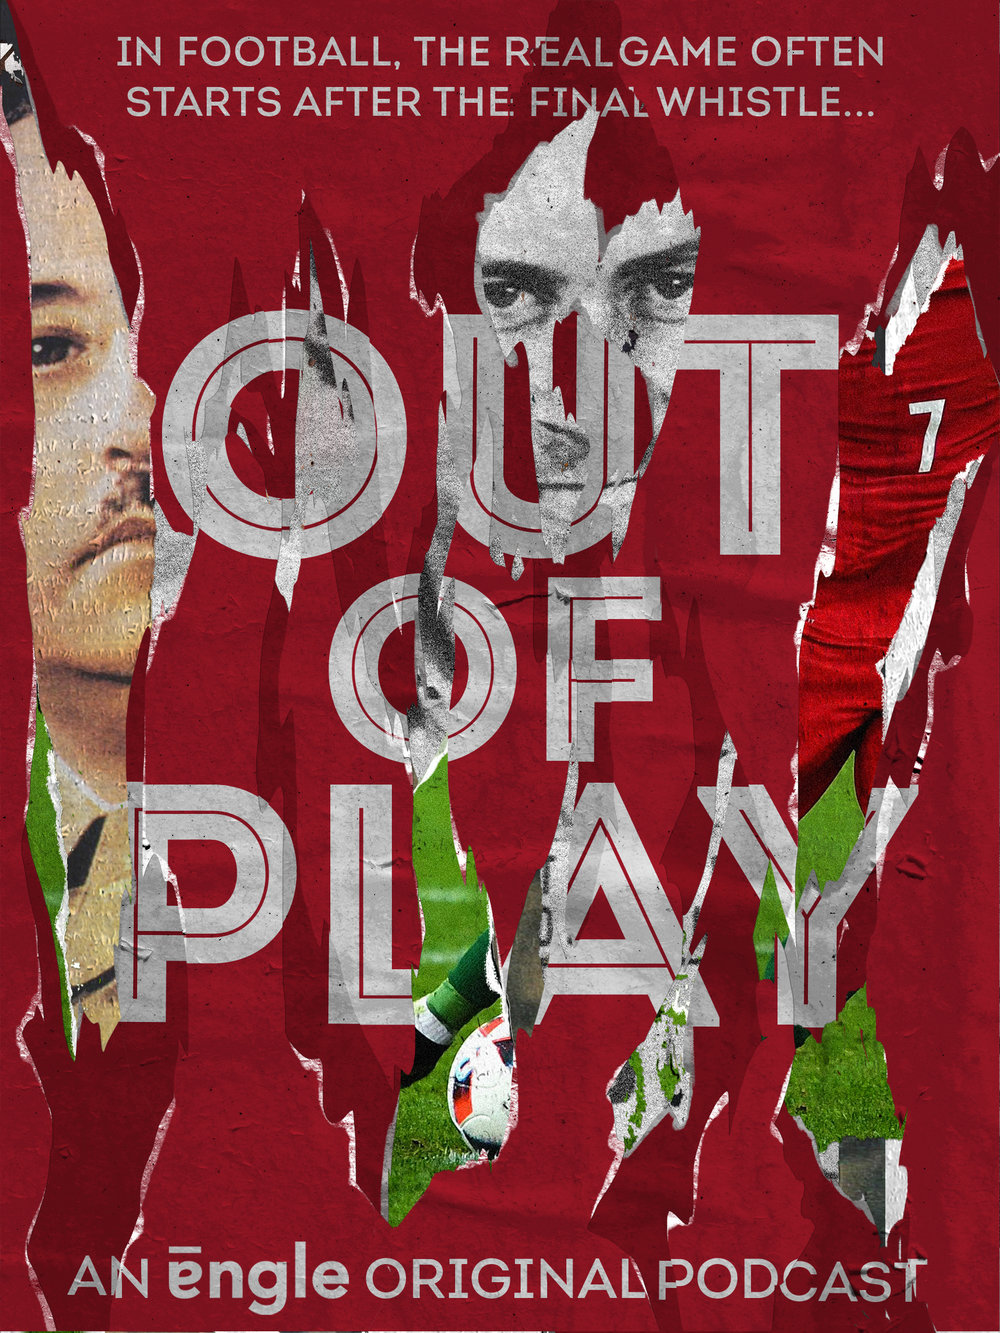 About - Out of Play (Loi 11 in French) is an audio-documentary telling the stories from 8 countries qualified for the 2018 World Cup.Written by 8 supporters from these countries, Out Of Play / Loi 11 will take you through the incredible impact football, and especially the World Cup, can have on a country's politics, economy, people and even more... Discover how in Football the real game often starts after the final whistle...- Written by: Dejan Milivojevic (Yougoslavia); Abigail Anaba (Nigeria); Andres Nunez del Prado (Peru); Fernando Mahia Vilas (Spain); Sofia Victoria Abrantes (Portugal); Hatem Maher (Egypt);Will Beebe (Brasil); Alejandro Vargas (Colombia) - Produced by Engle- English Voice: David Gassman- Voix française: Alexis Victor- Original Score: Romain Paillot & Max Zippel